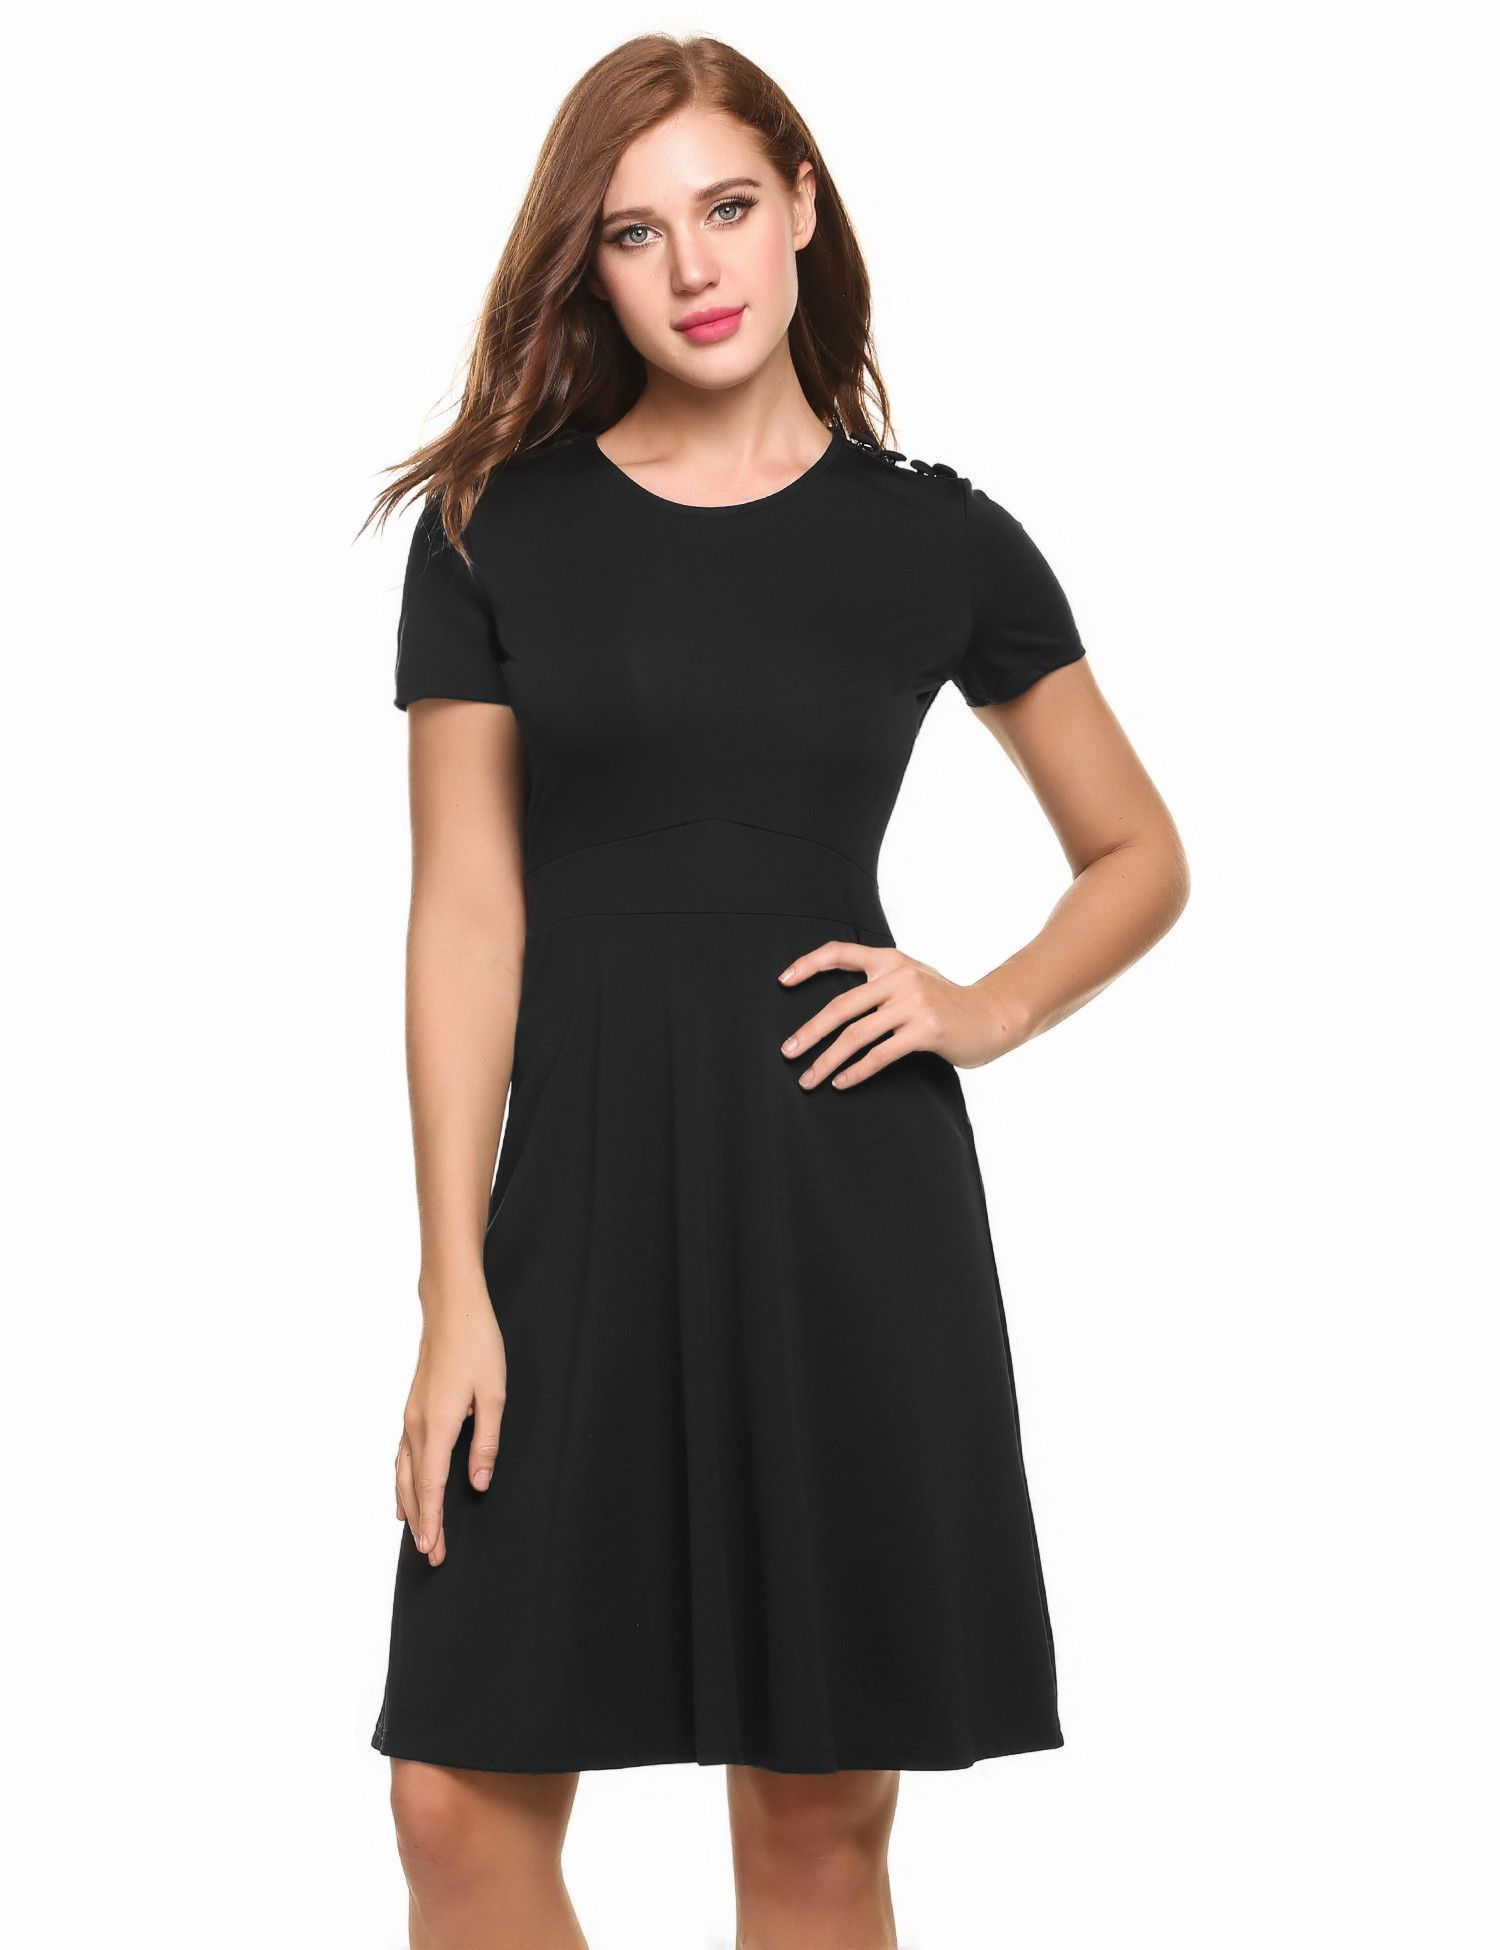 Black short sleeve solid shoulder button fit and flare